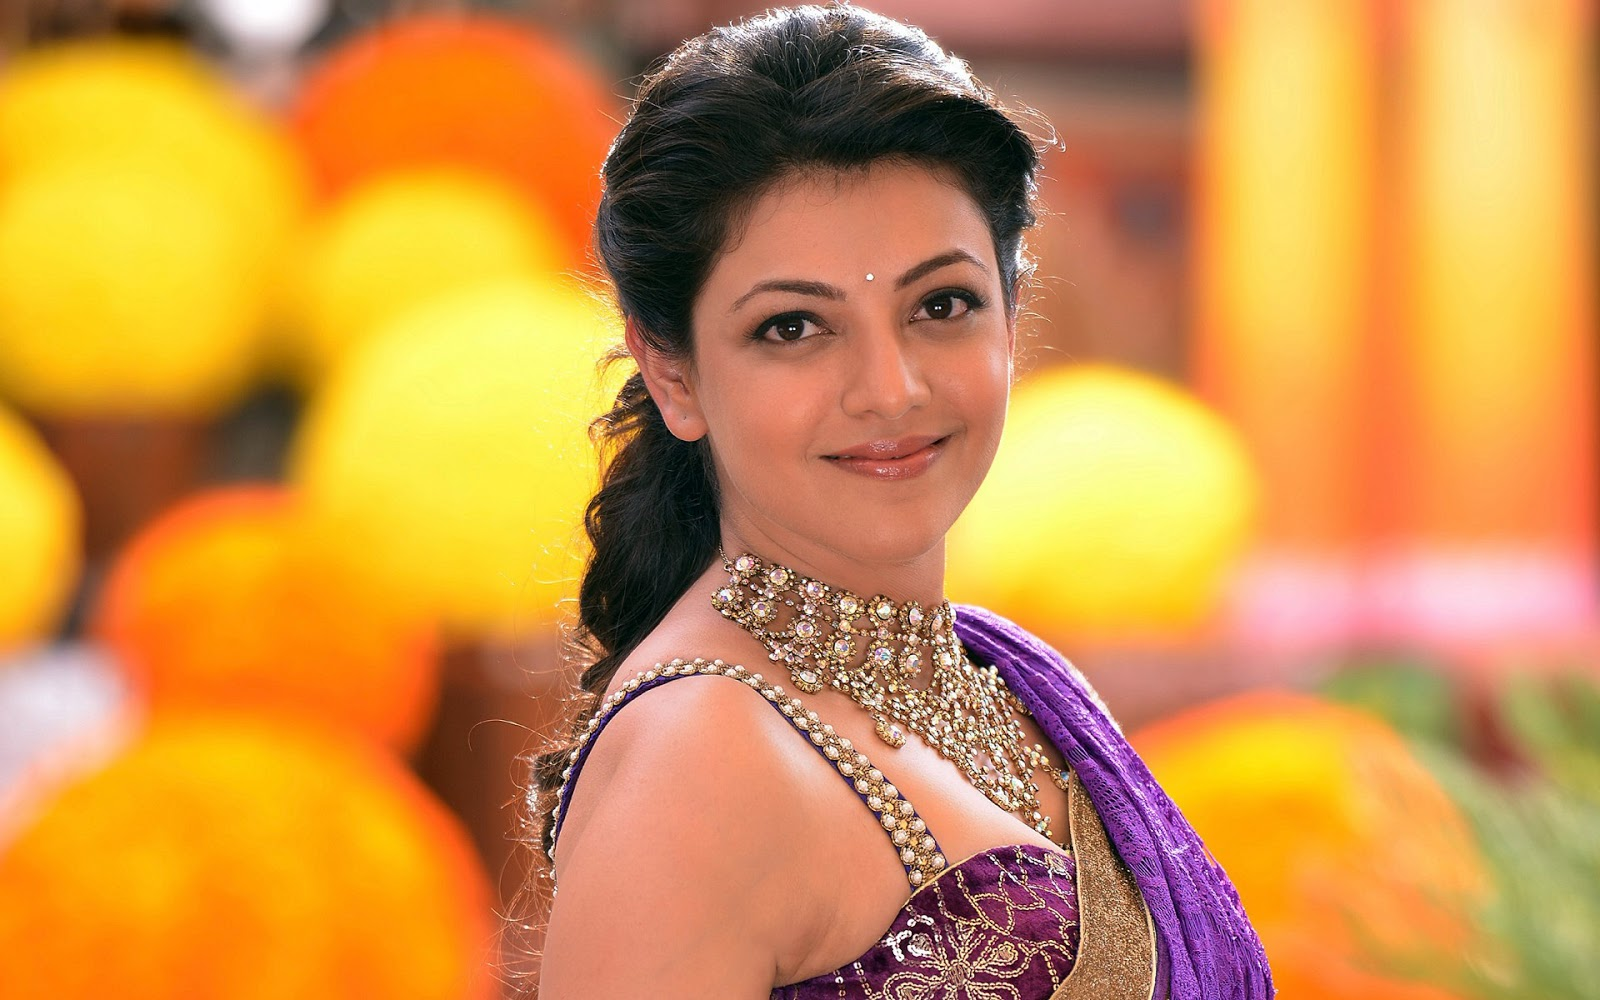 kajal agarwal hd wallpapers - hd wallpapers download